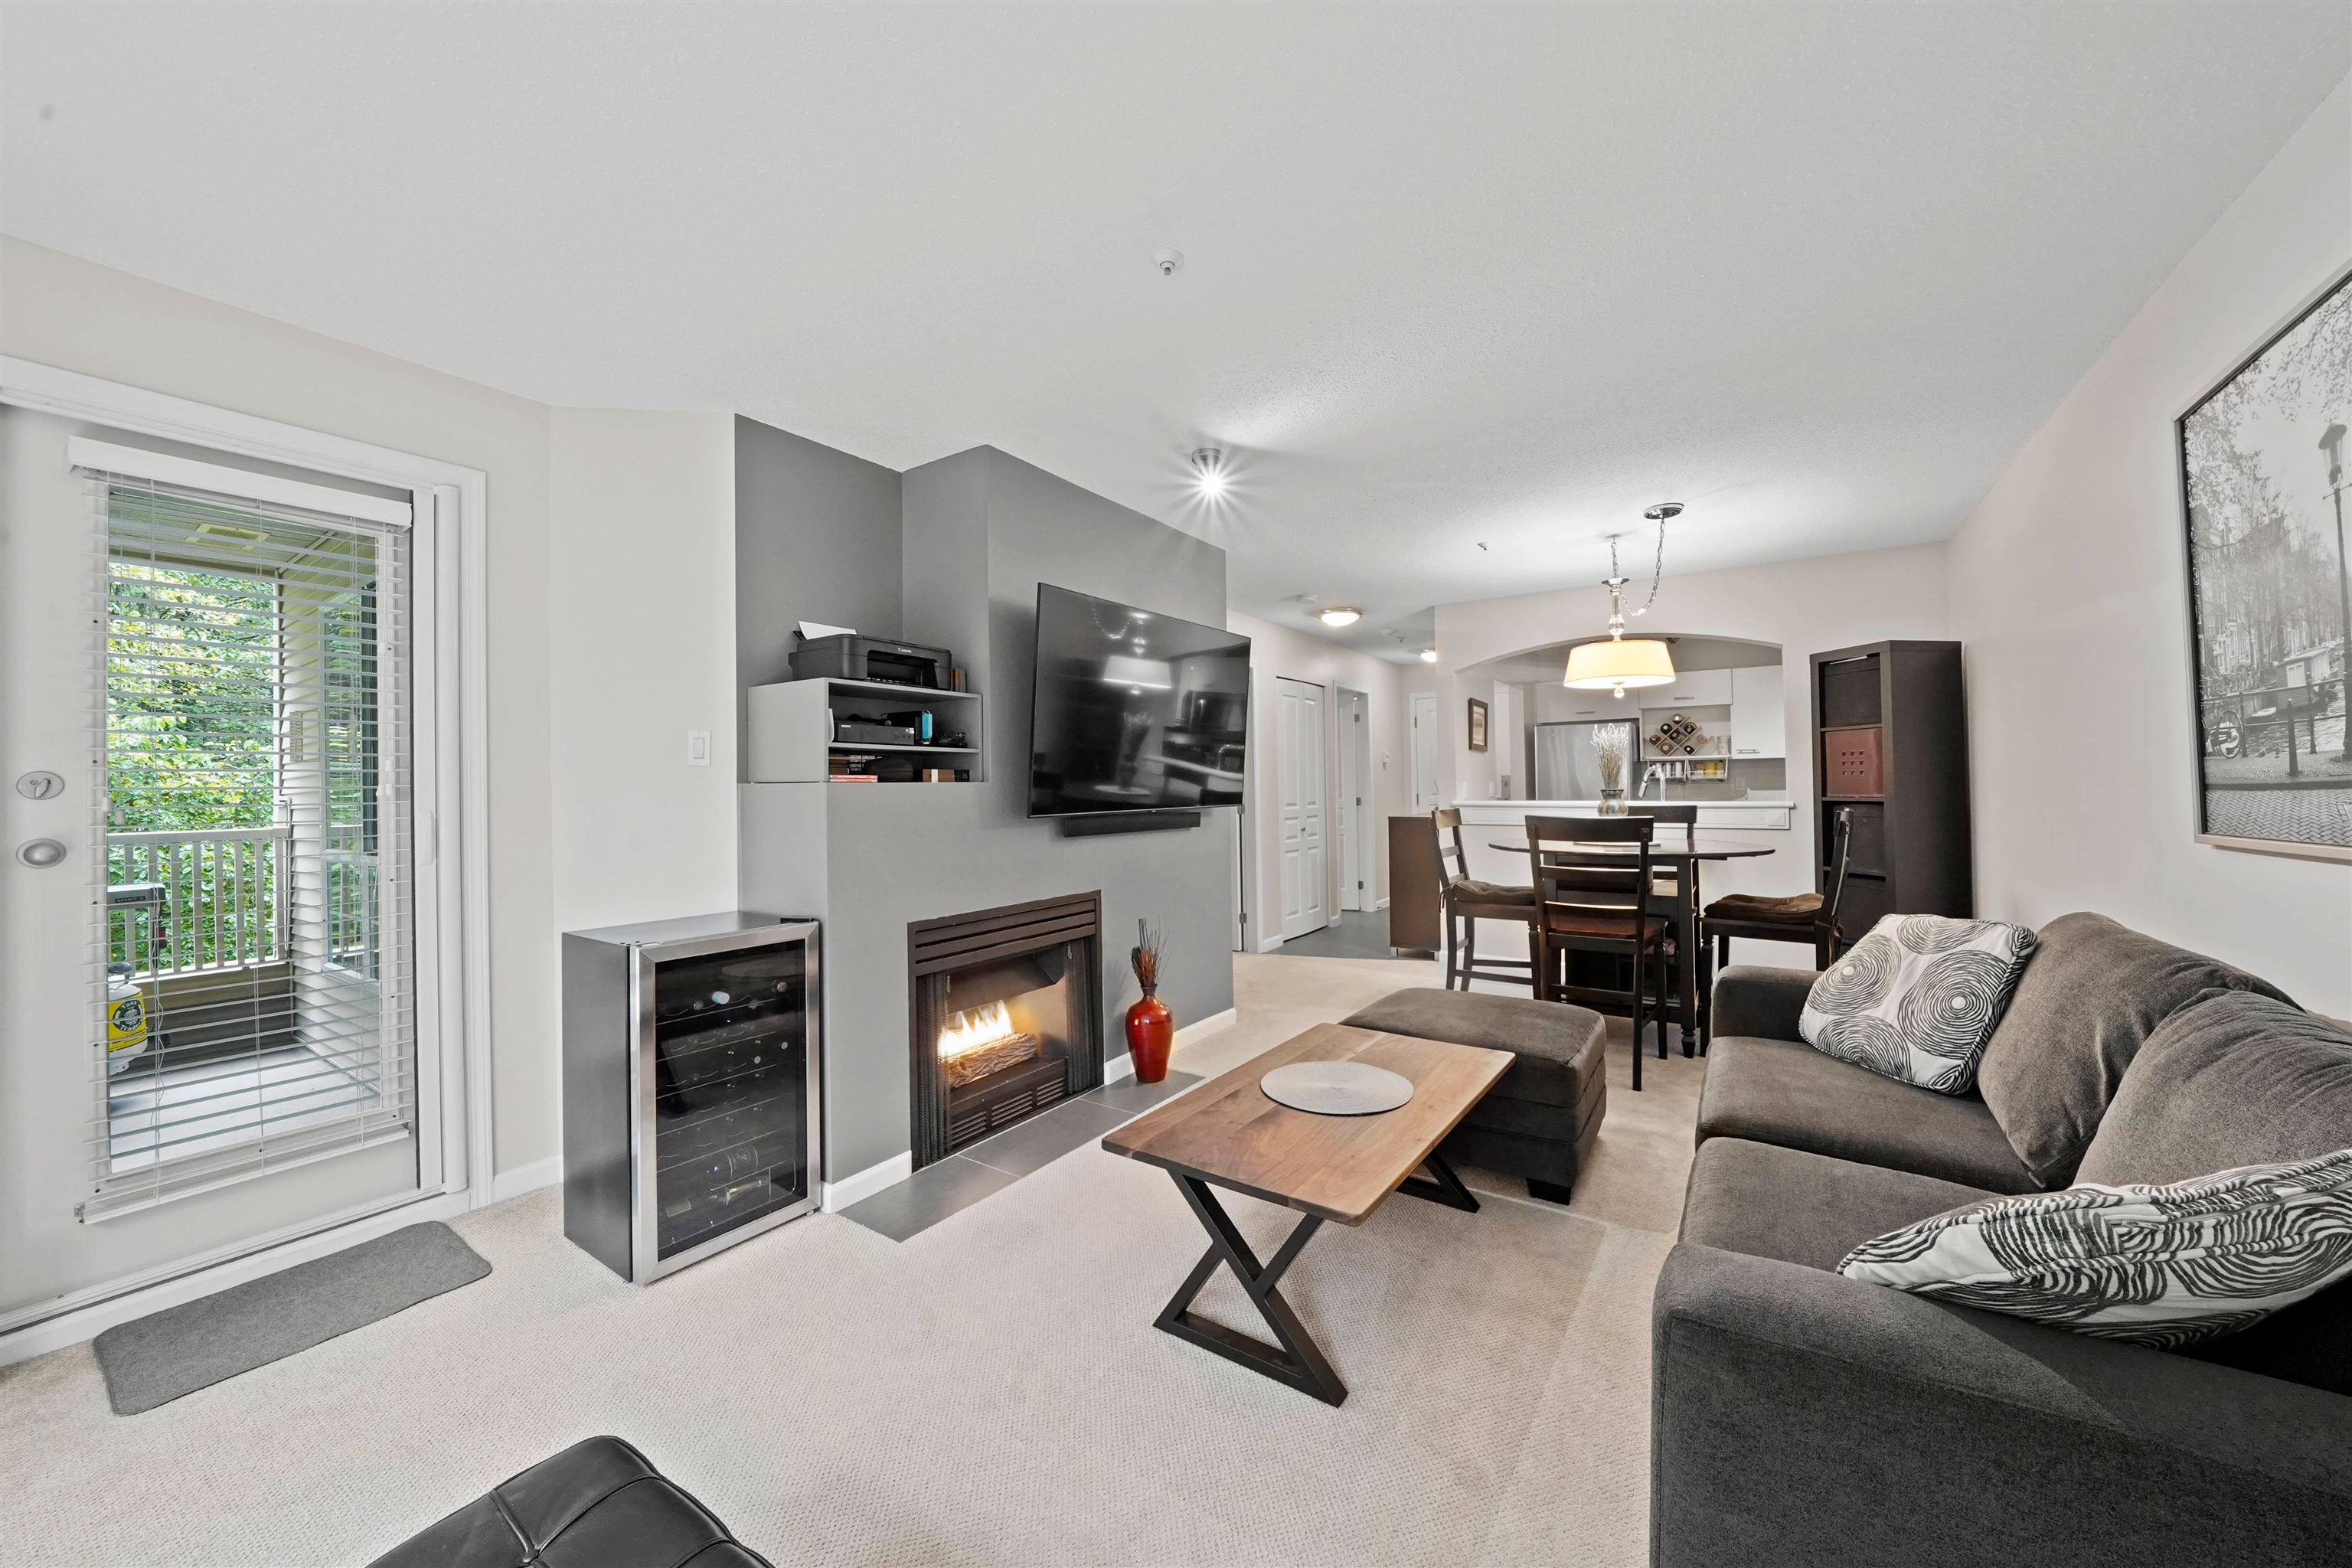 Main Photo: 235 1252 TOWN CENTRE Boulevard in Coquitlam: Canyon Springs Condo for sale : MLS®# R2623595